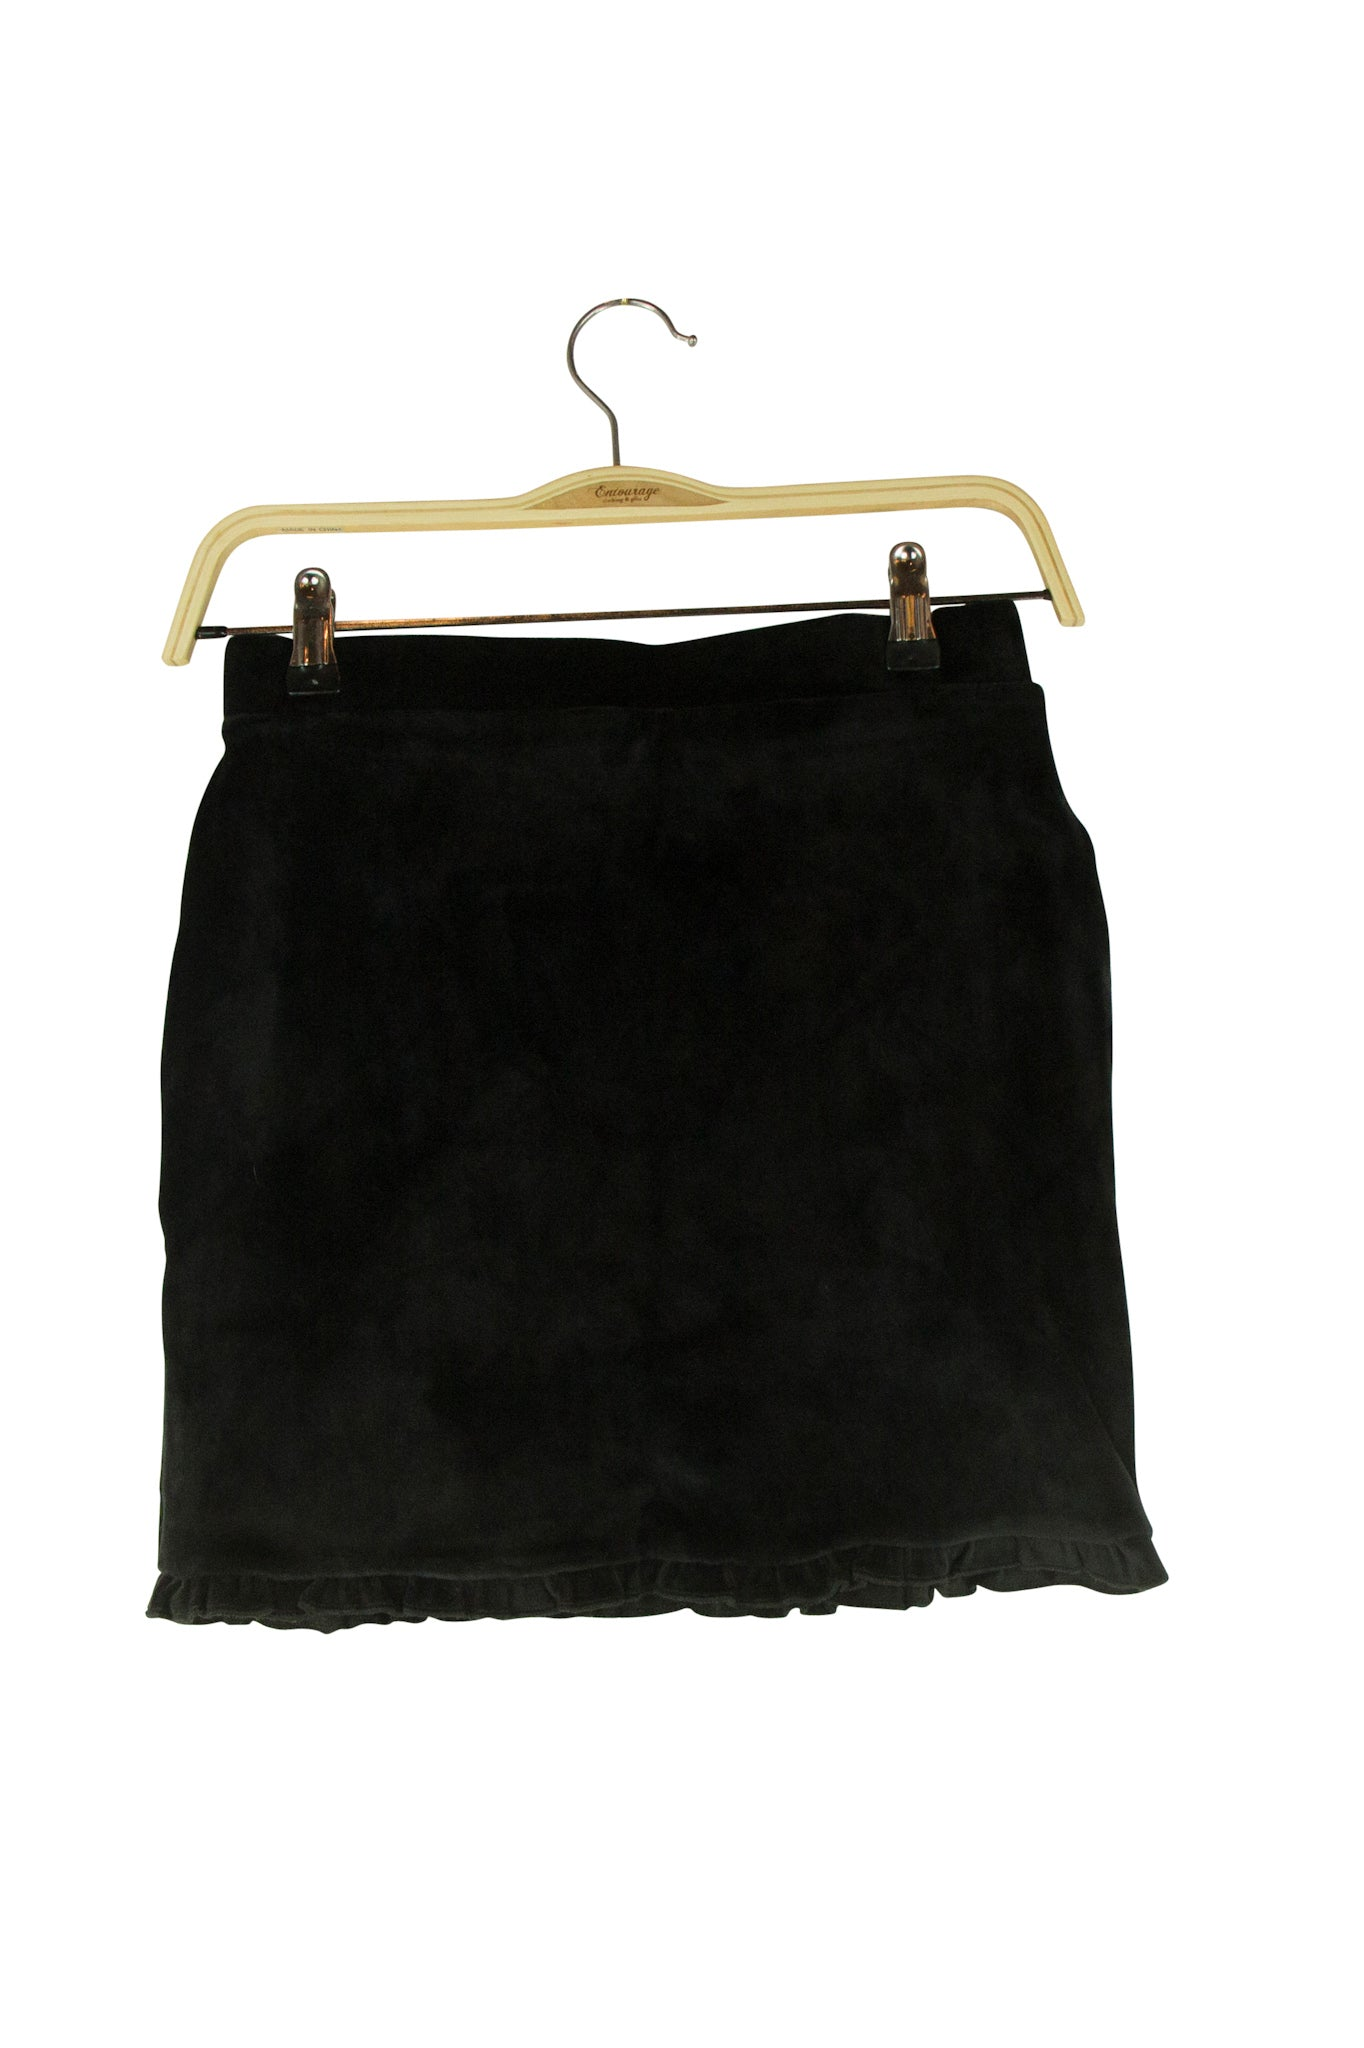 Eye Candy Skirt in Black